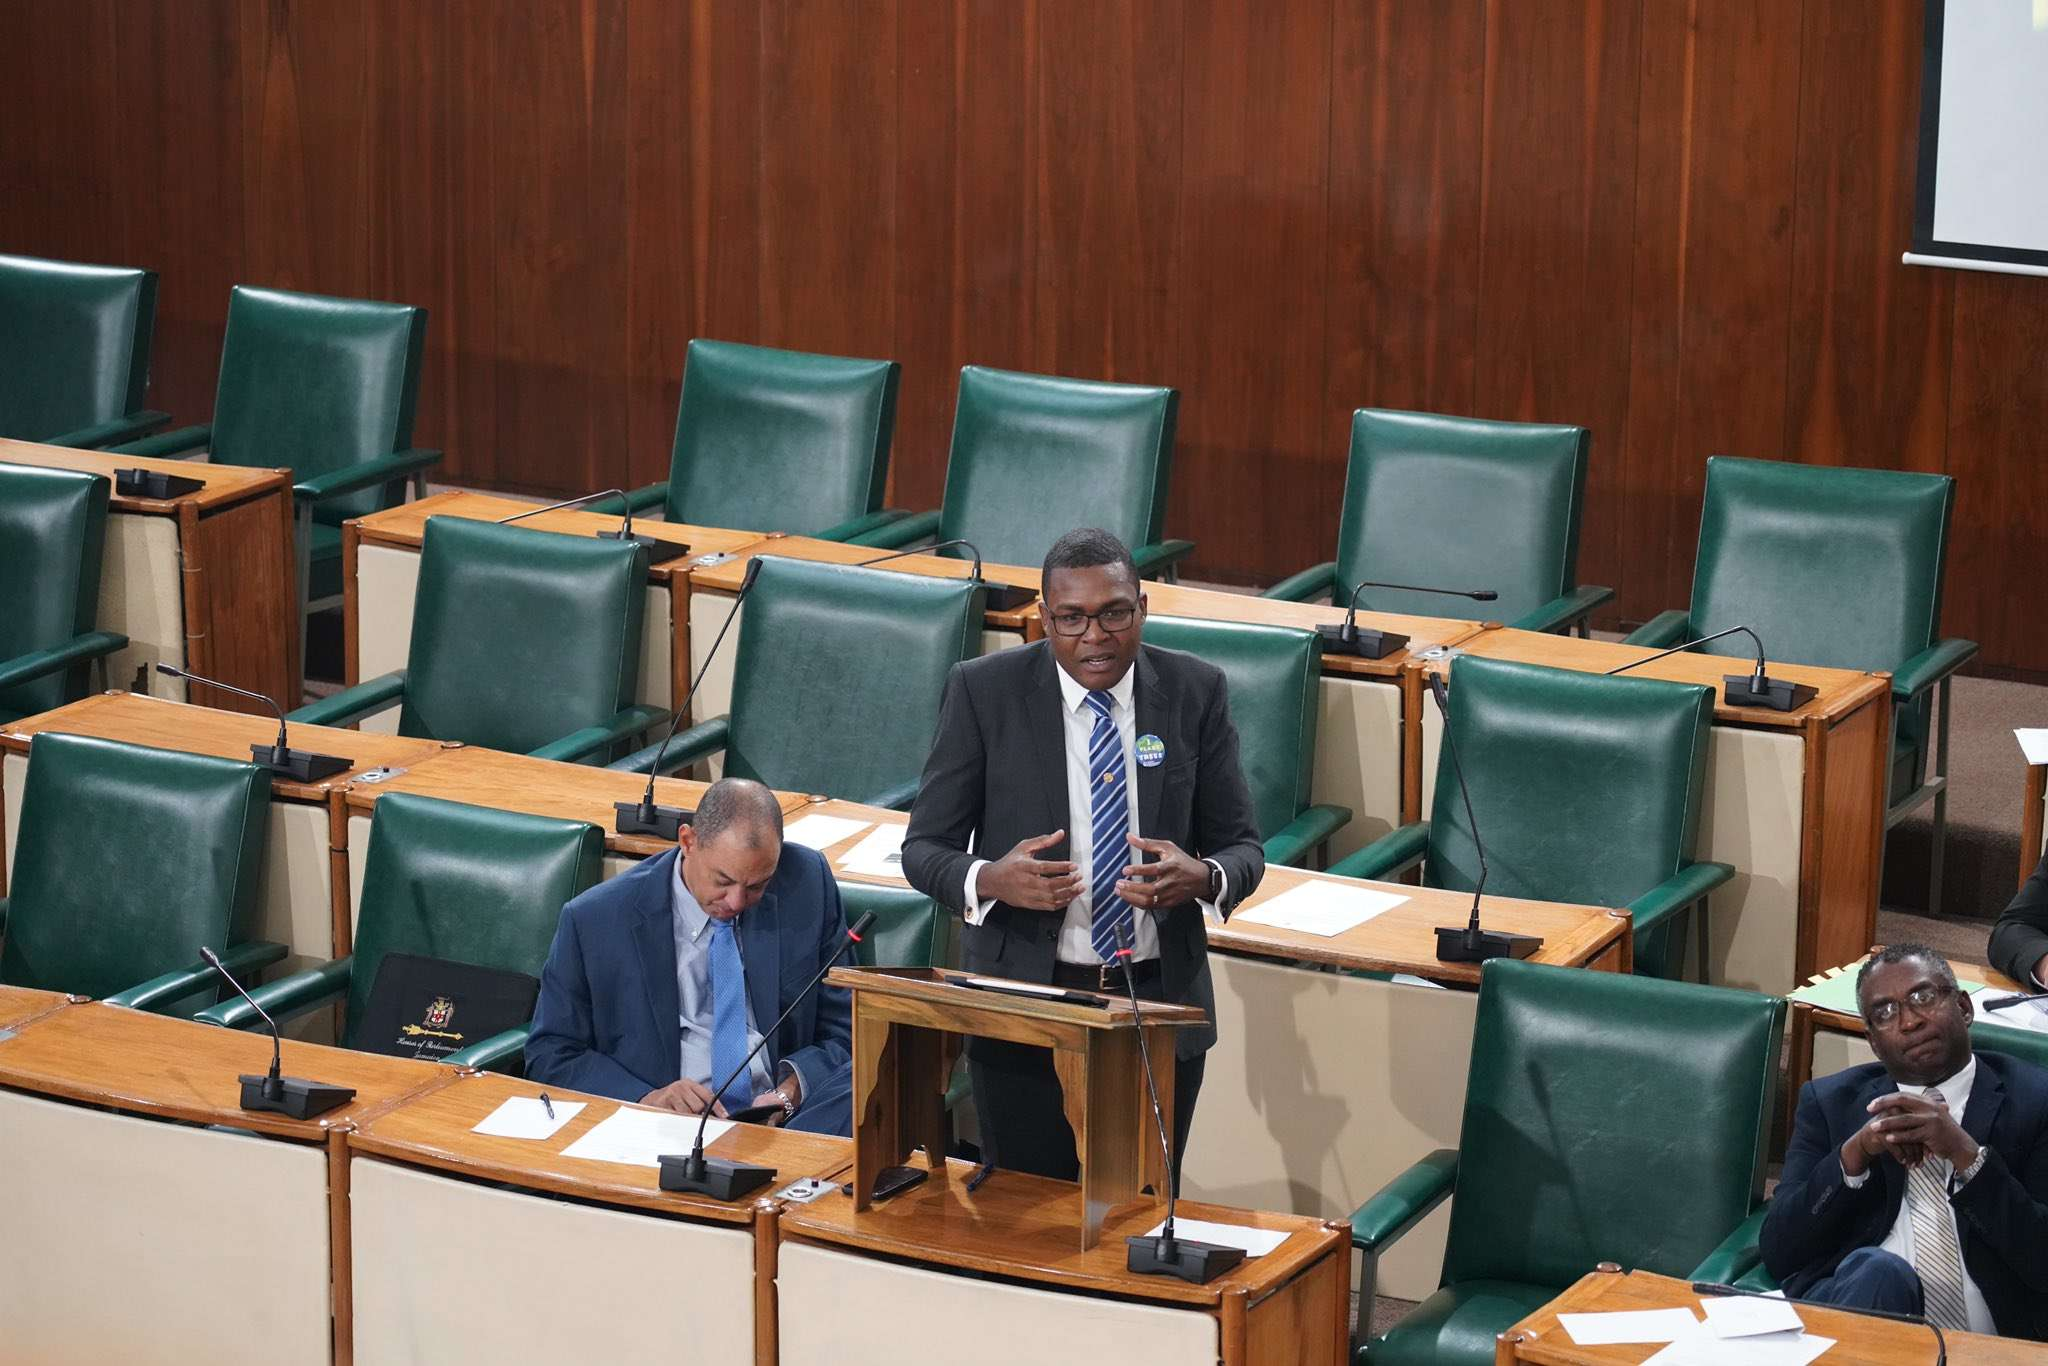 State Minister Highlights Youth Disenfranchisement From Education System Due to COVID-19